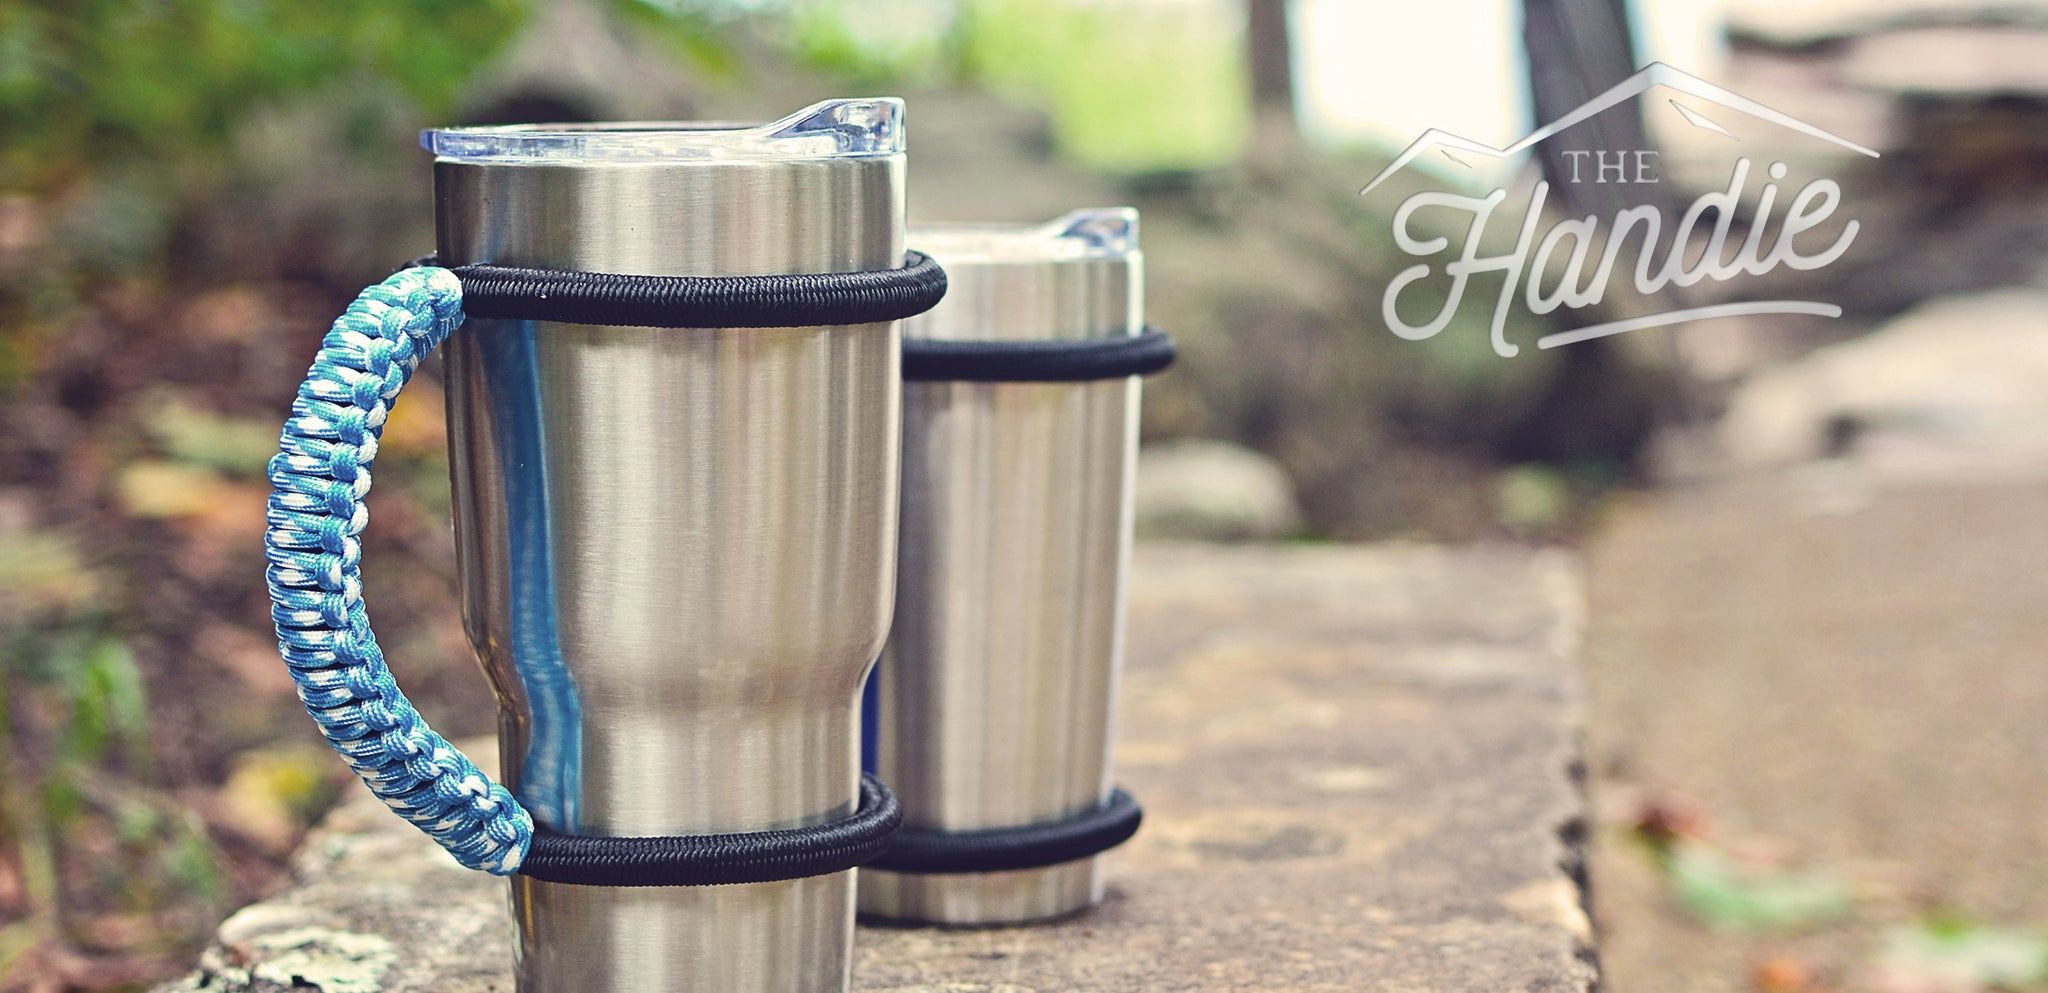 The Handie Handle - Fits Yeti Tumblers and more!